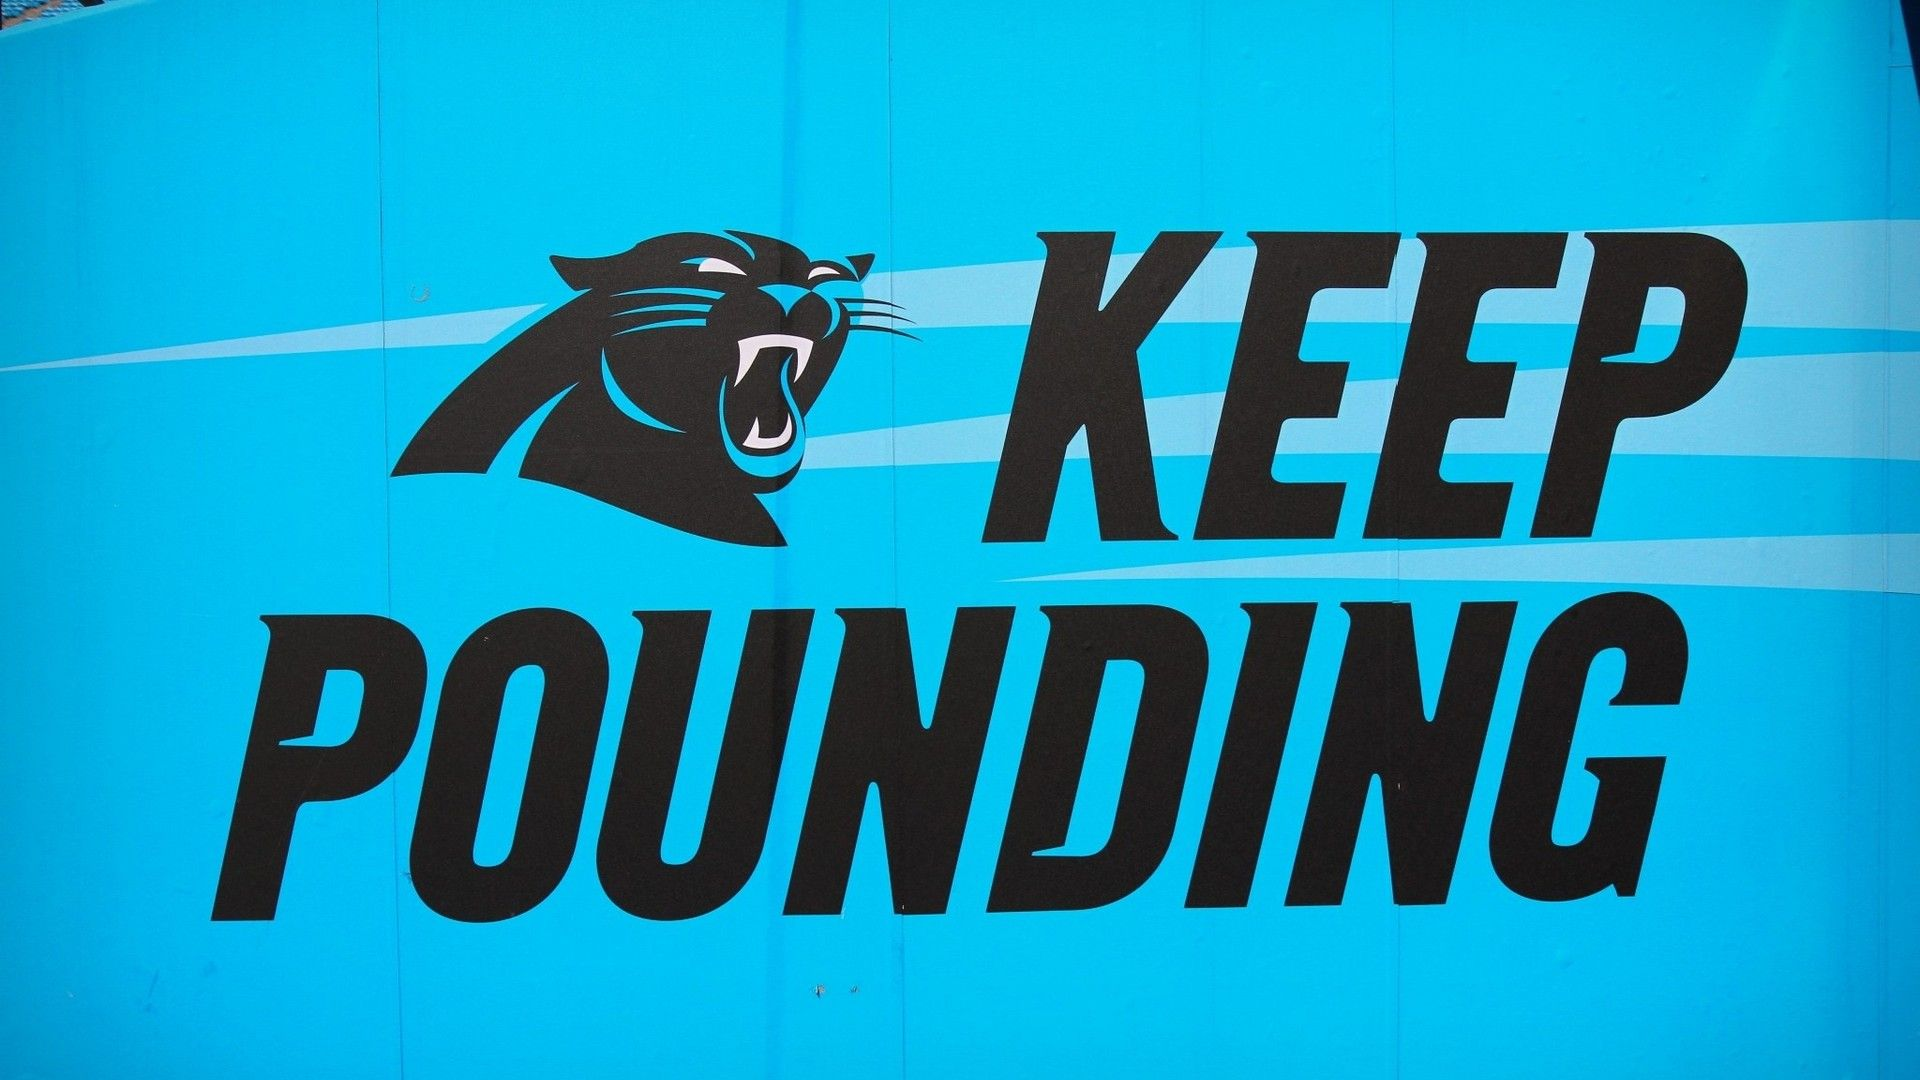 Carolina Panthers Desktop Wallpapers Wallpapers Football 1920x1080